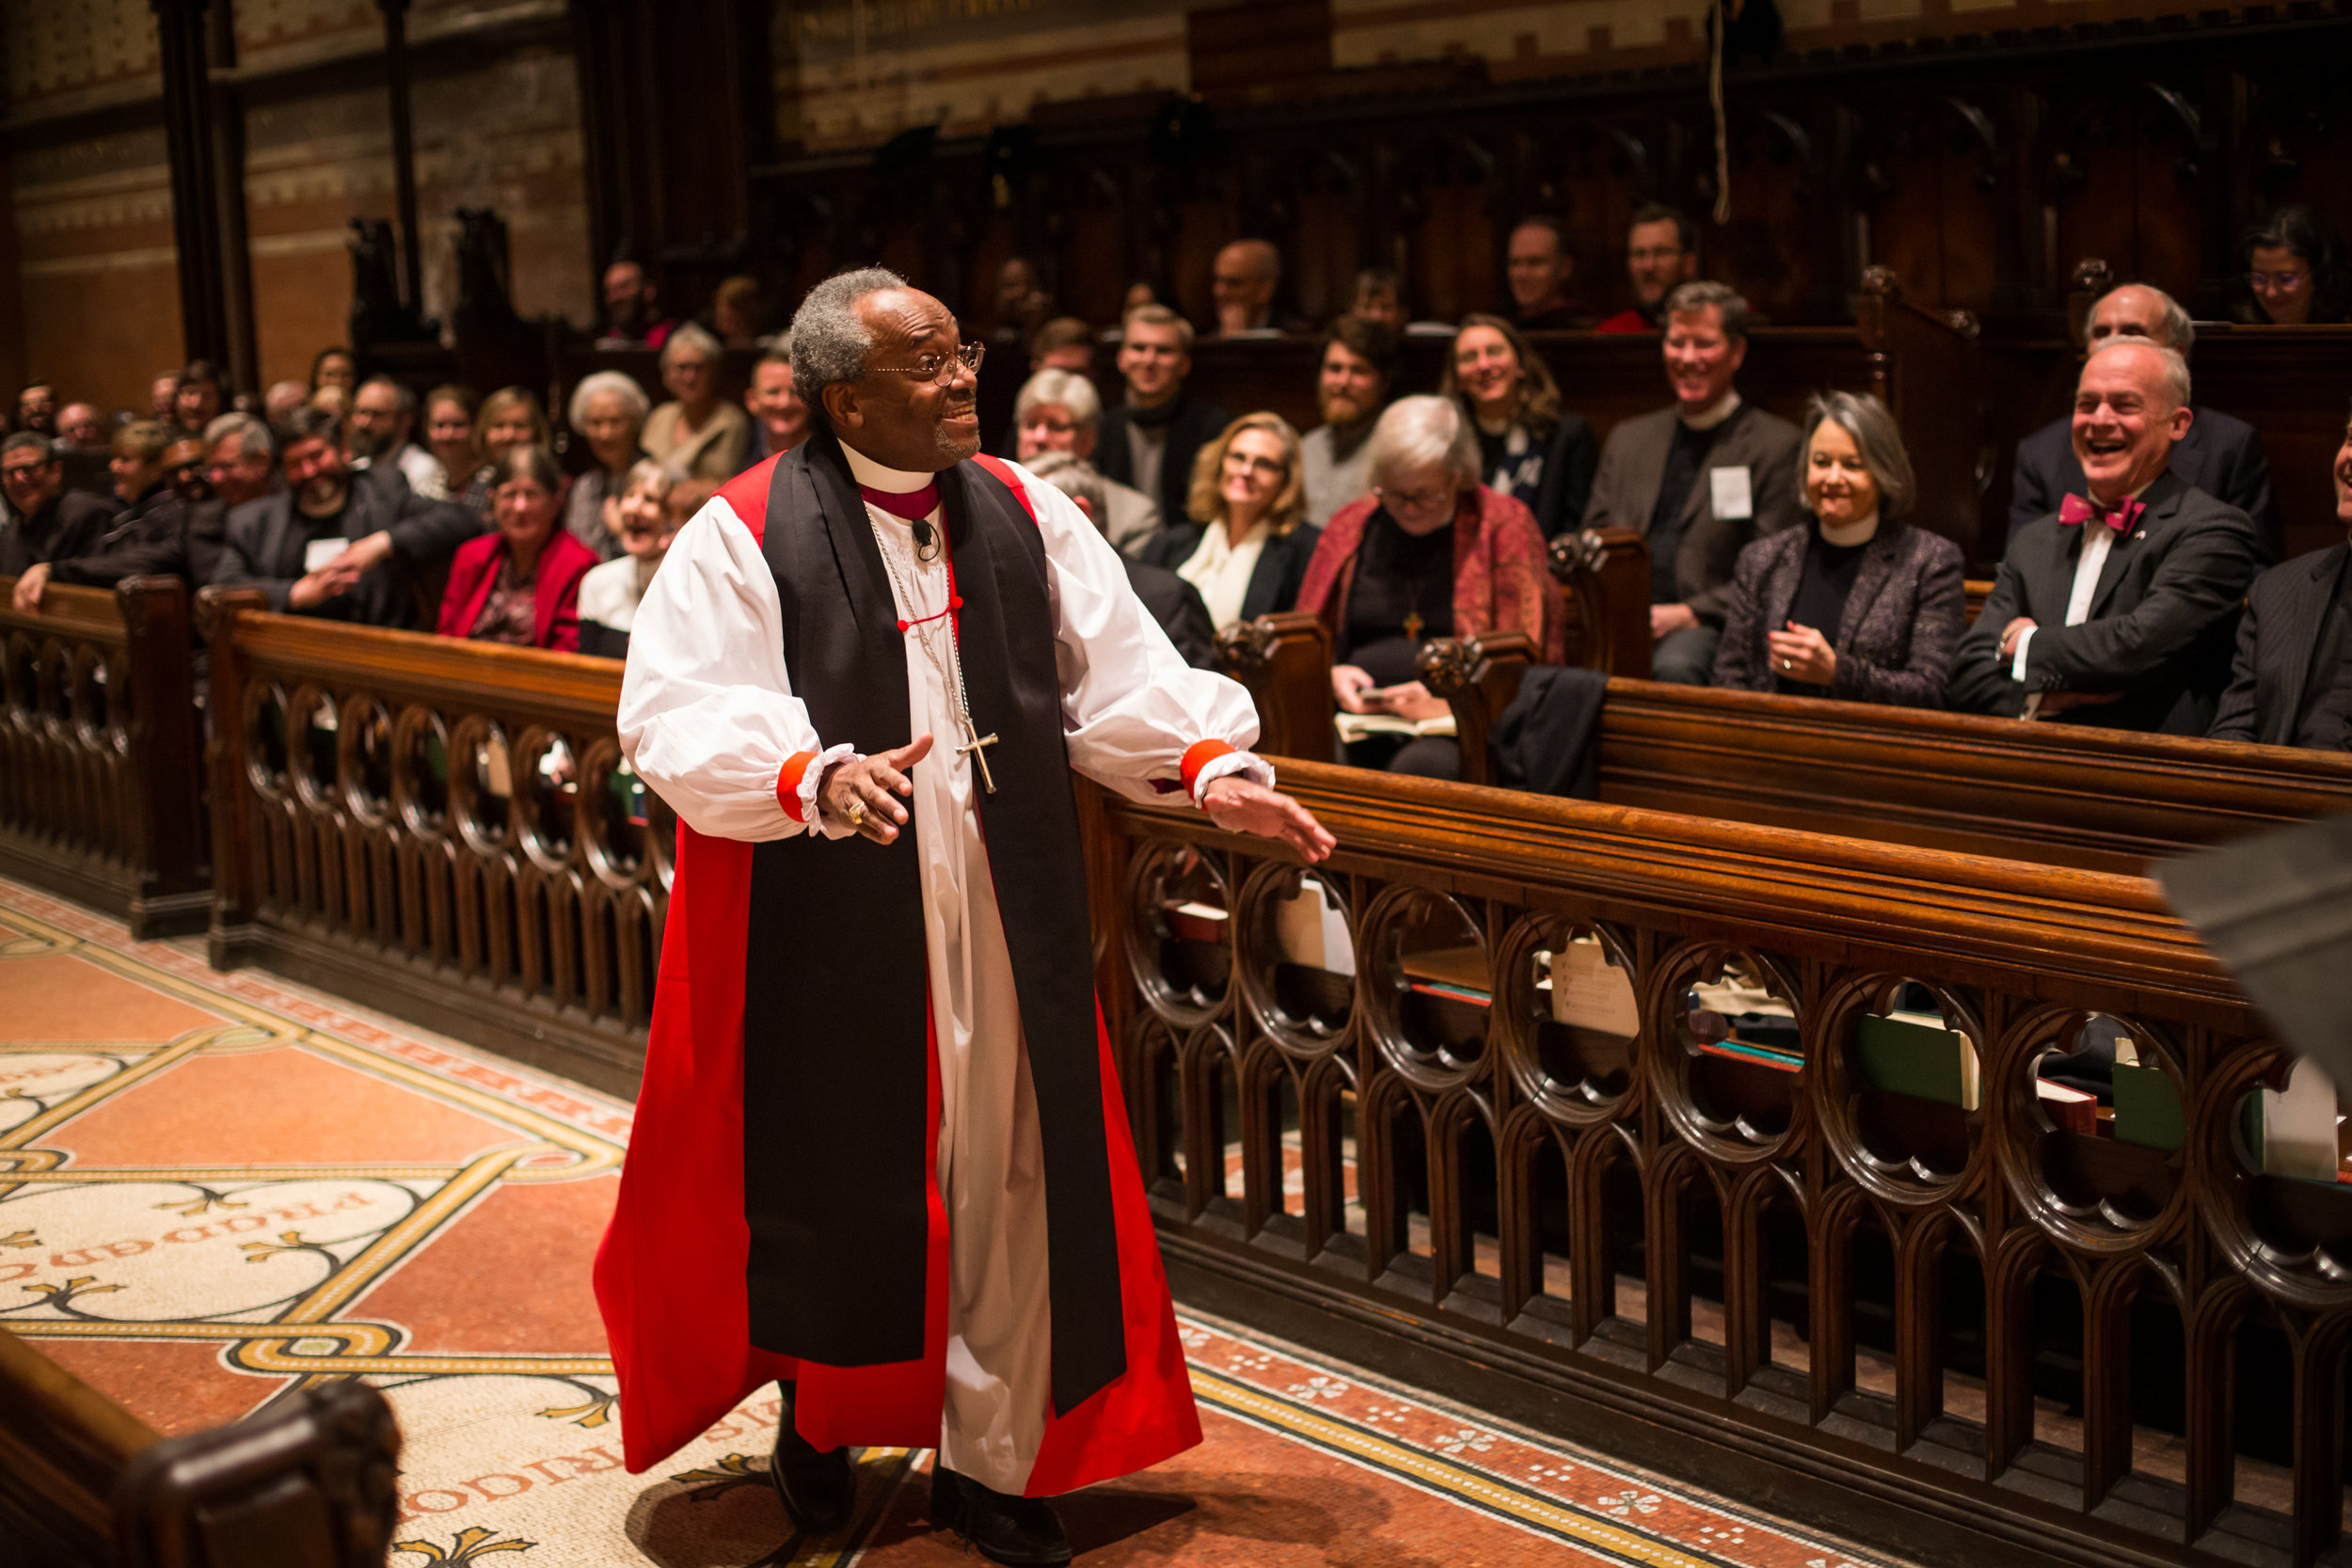 Michael Curry energizes those gathered in The Chapel of the Good Shepherd.